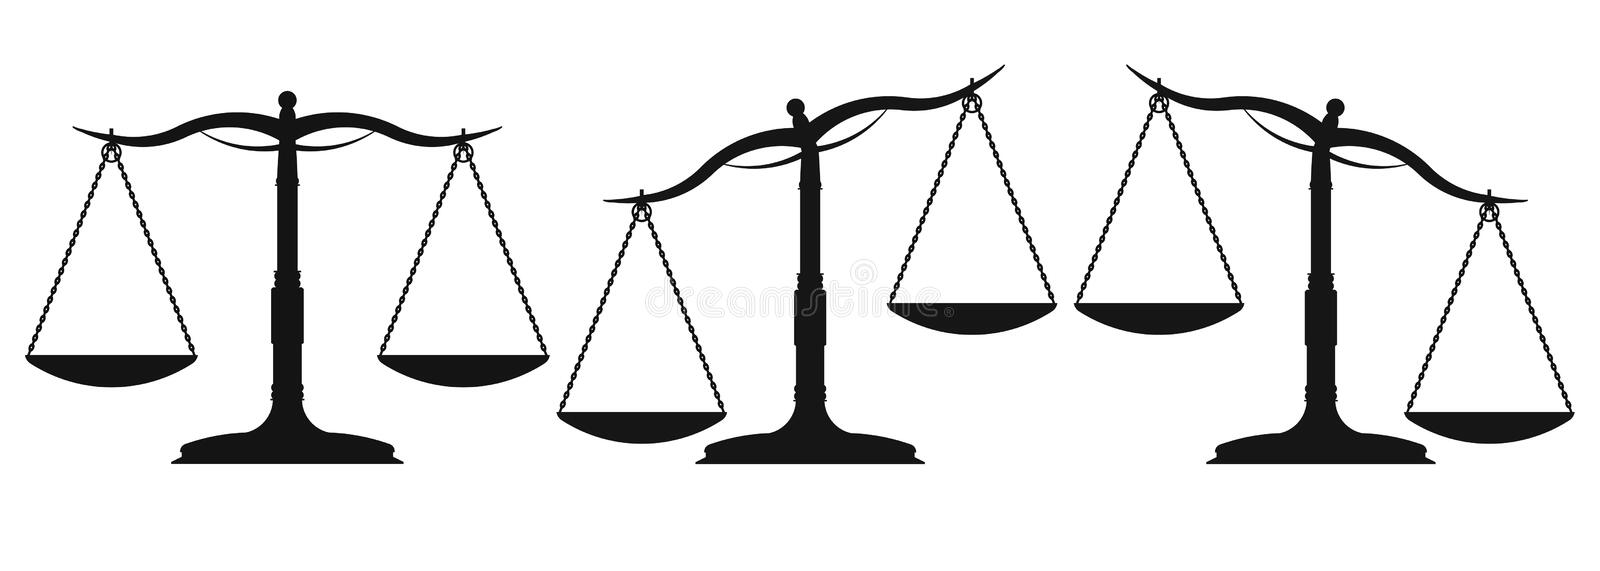 Scales and weight royalty free illustration